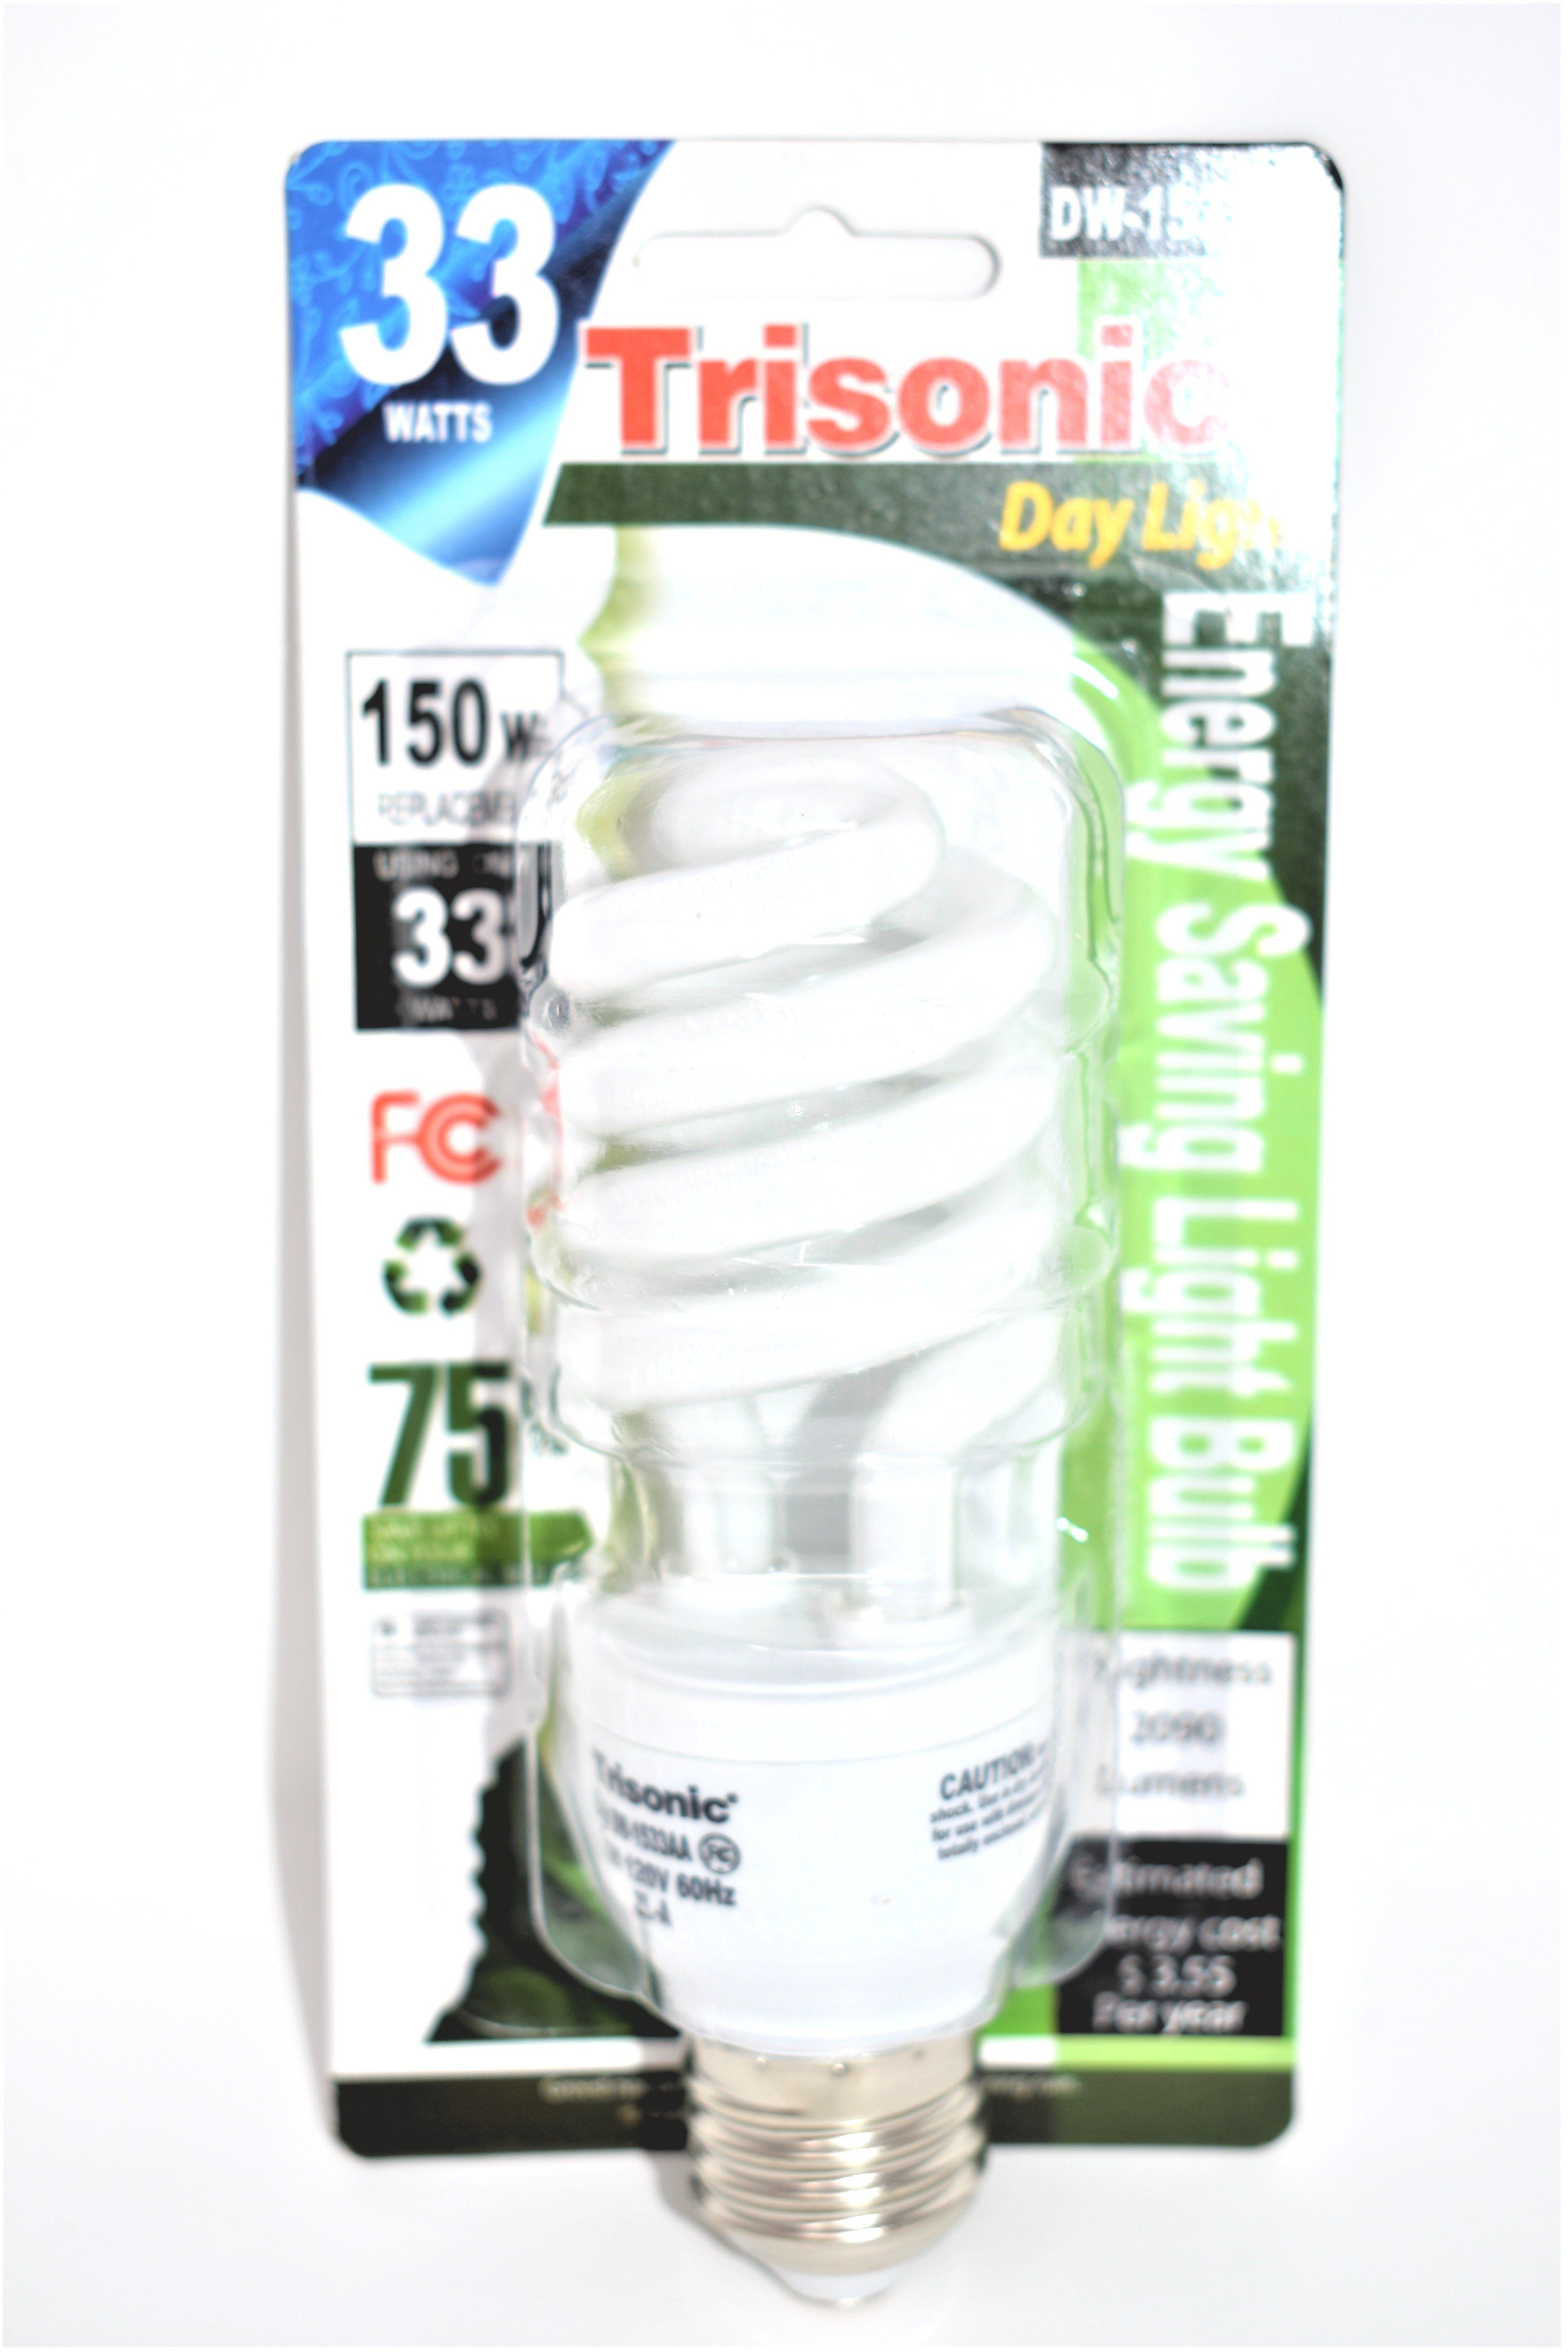 33 Watts 150 Watts Equivalent Energy Saving Light Bulb Save Energy Light Bulb Bulb